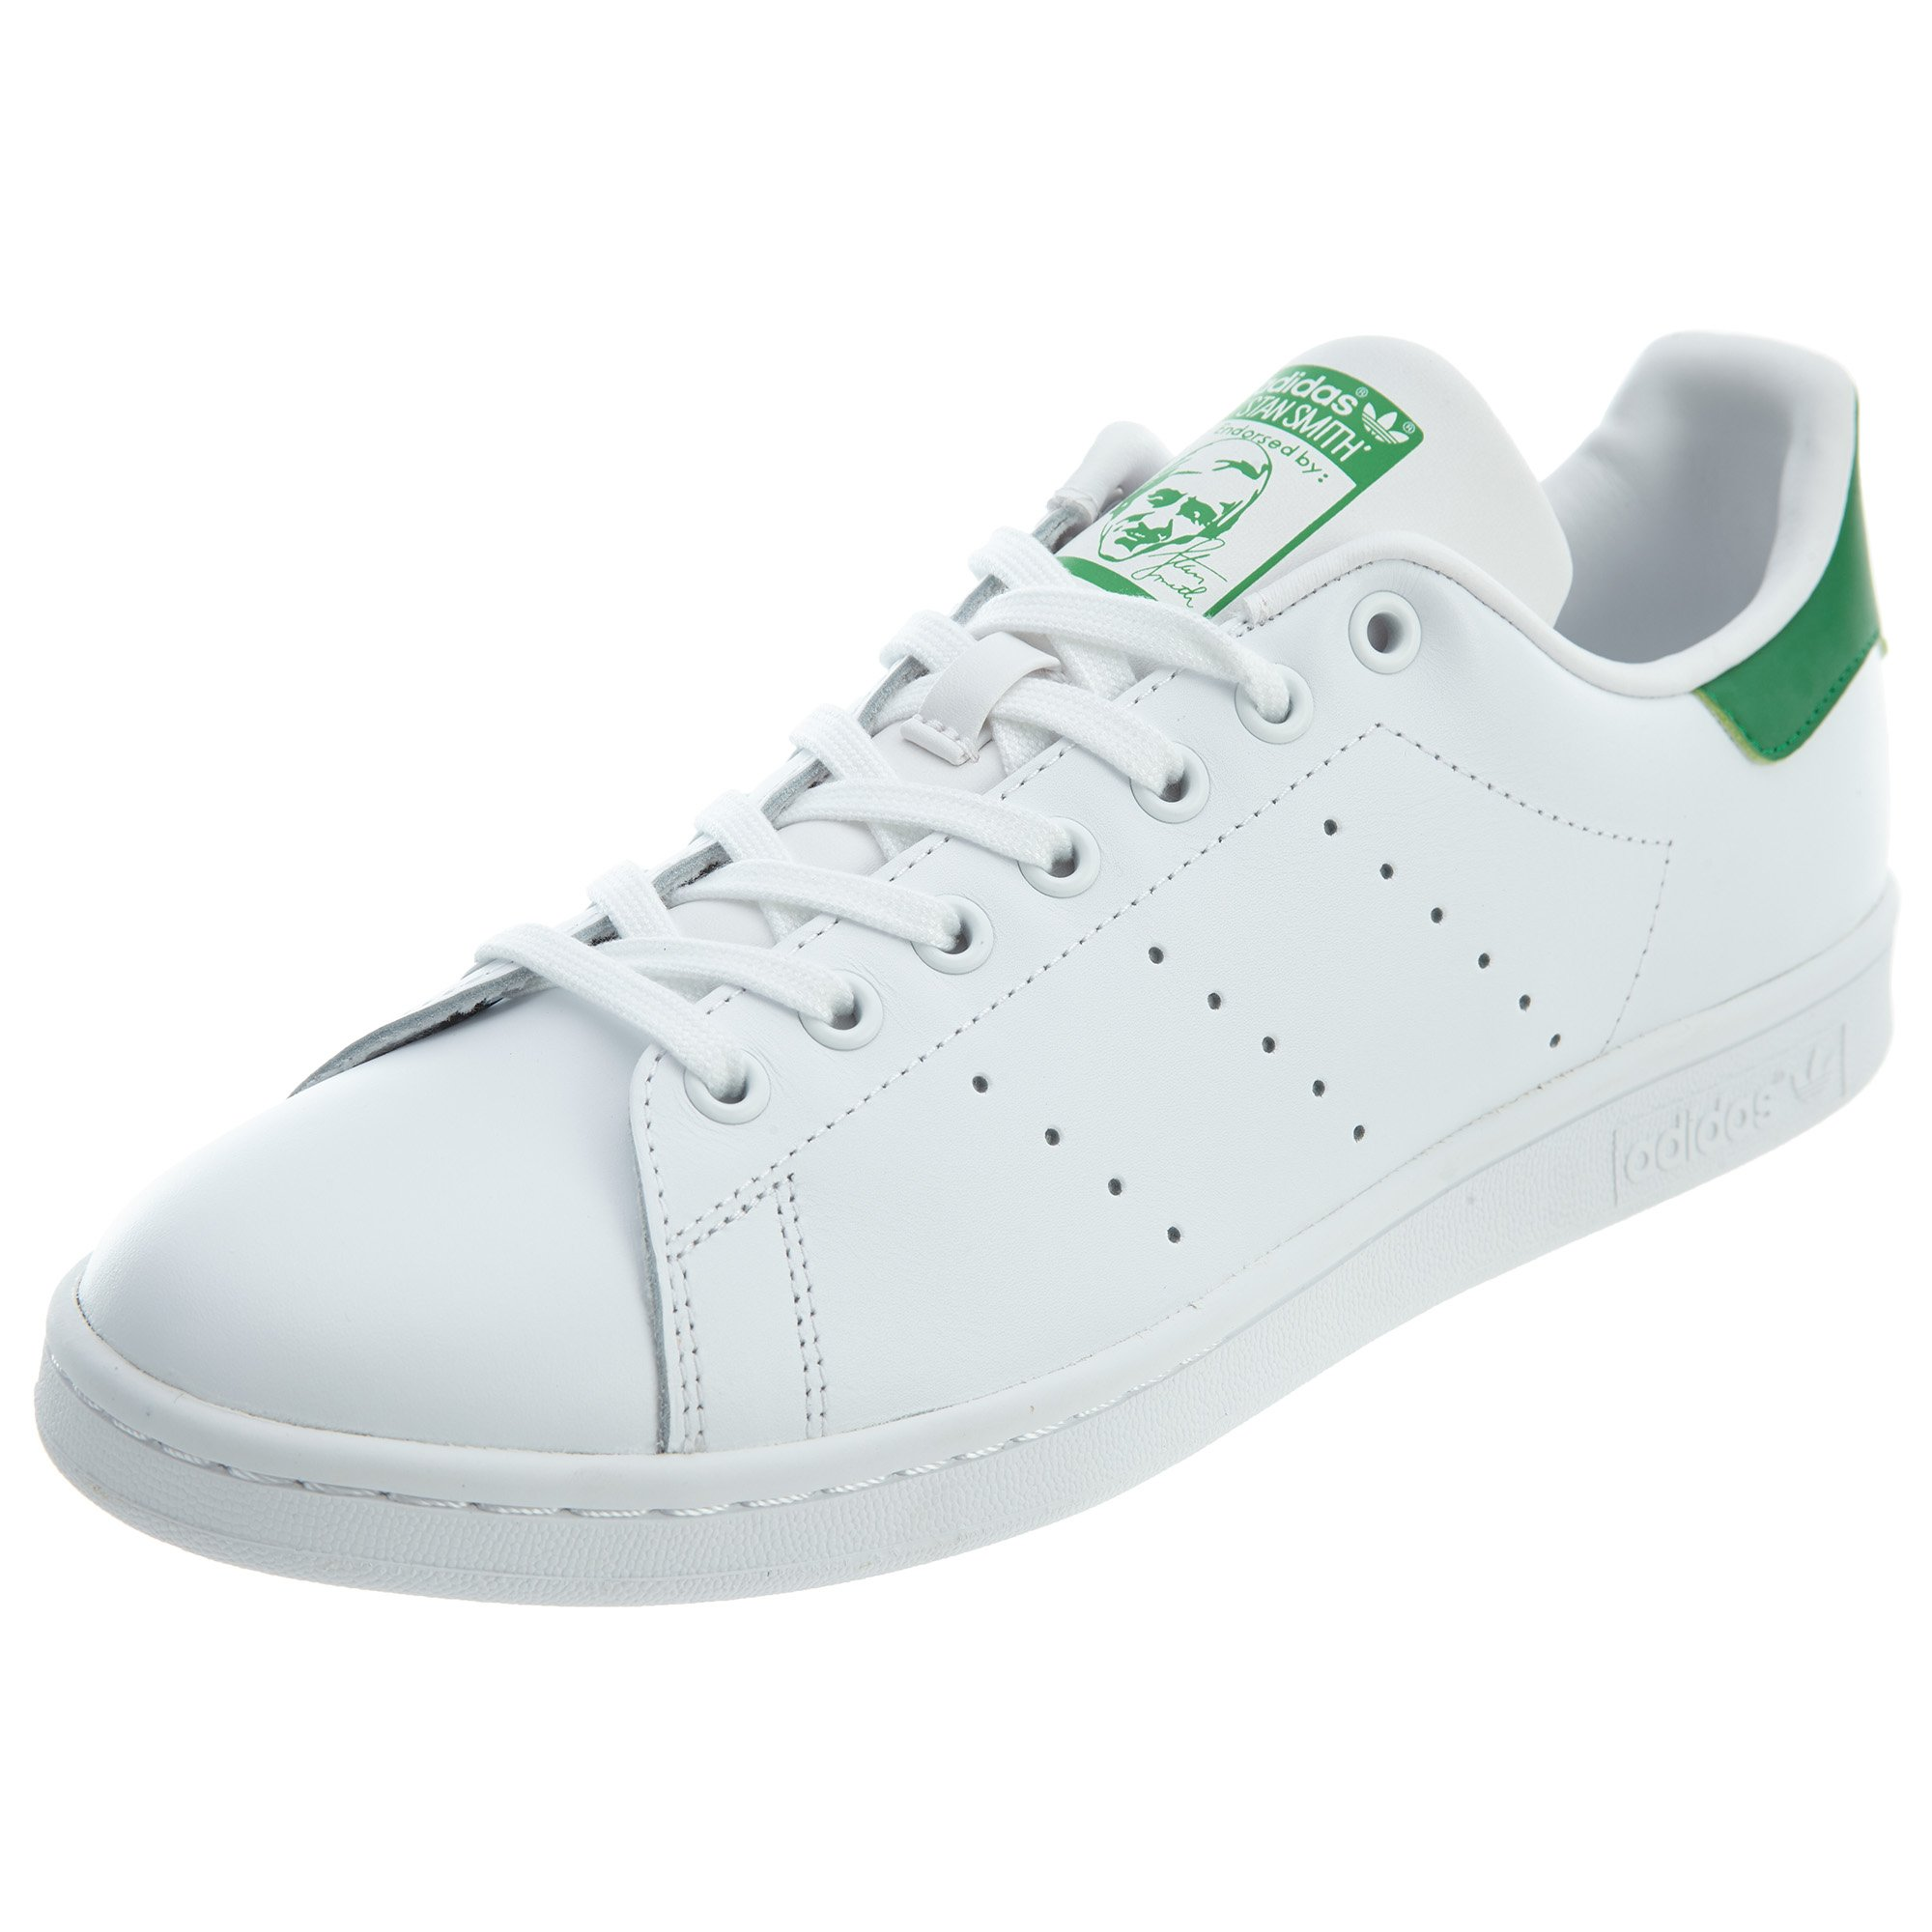 0f36b889d95 Galleon - Adidas Originals Men s Stan Smith Shoes Running Cloud White Core  White Green Size 7.5